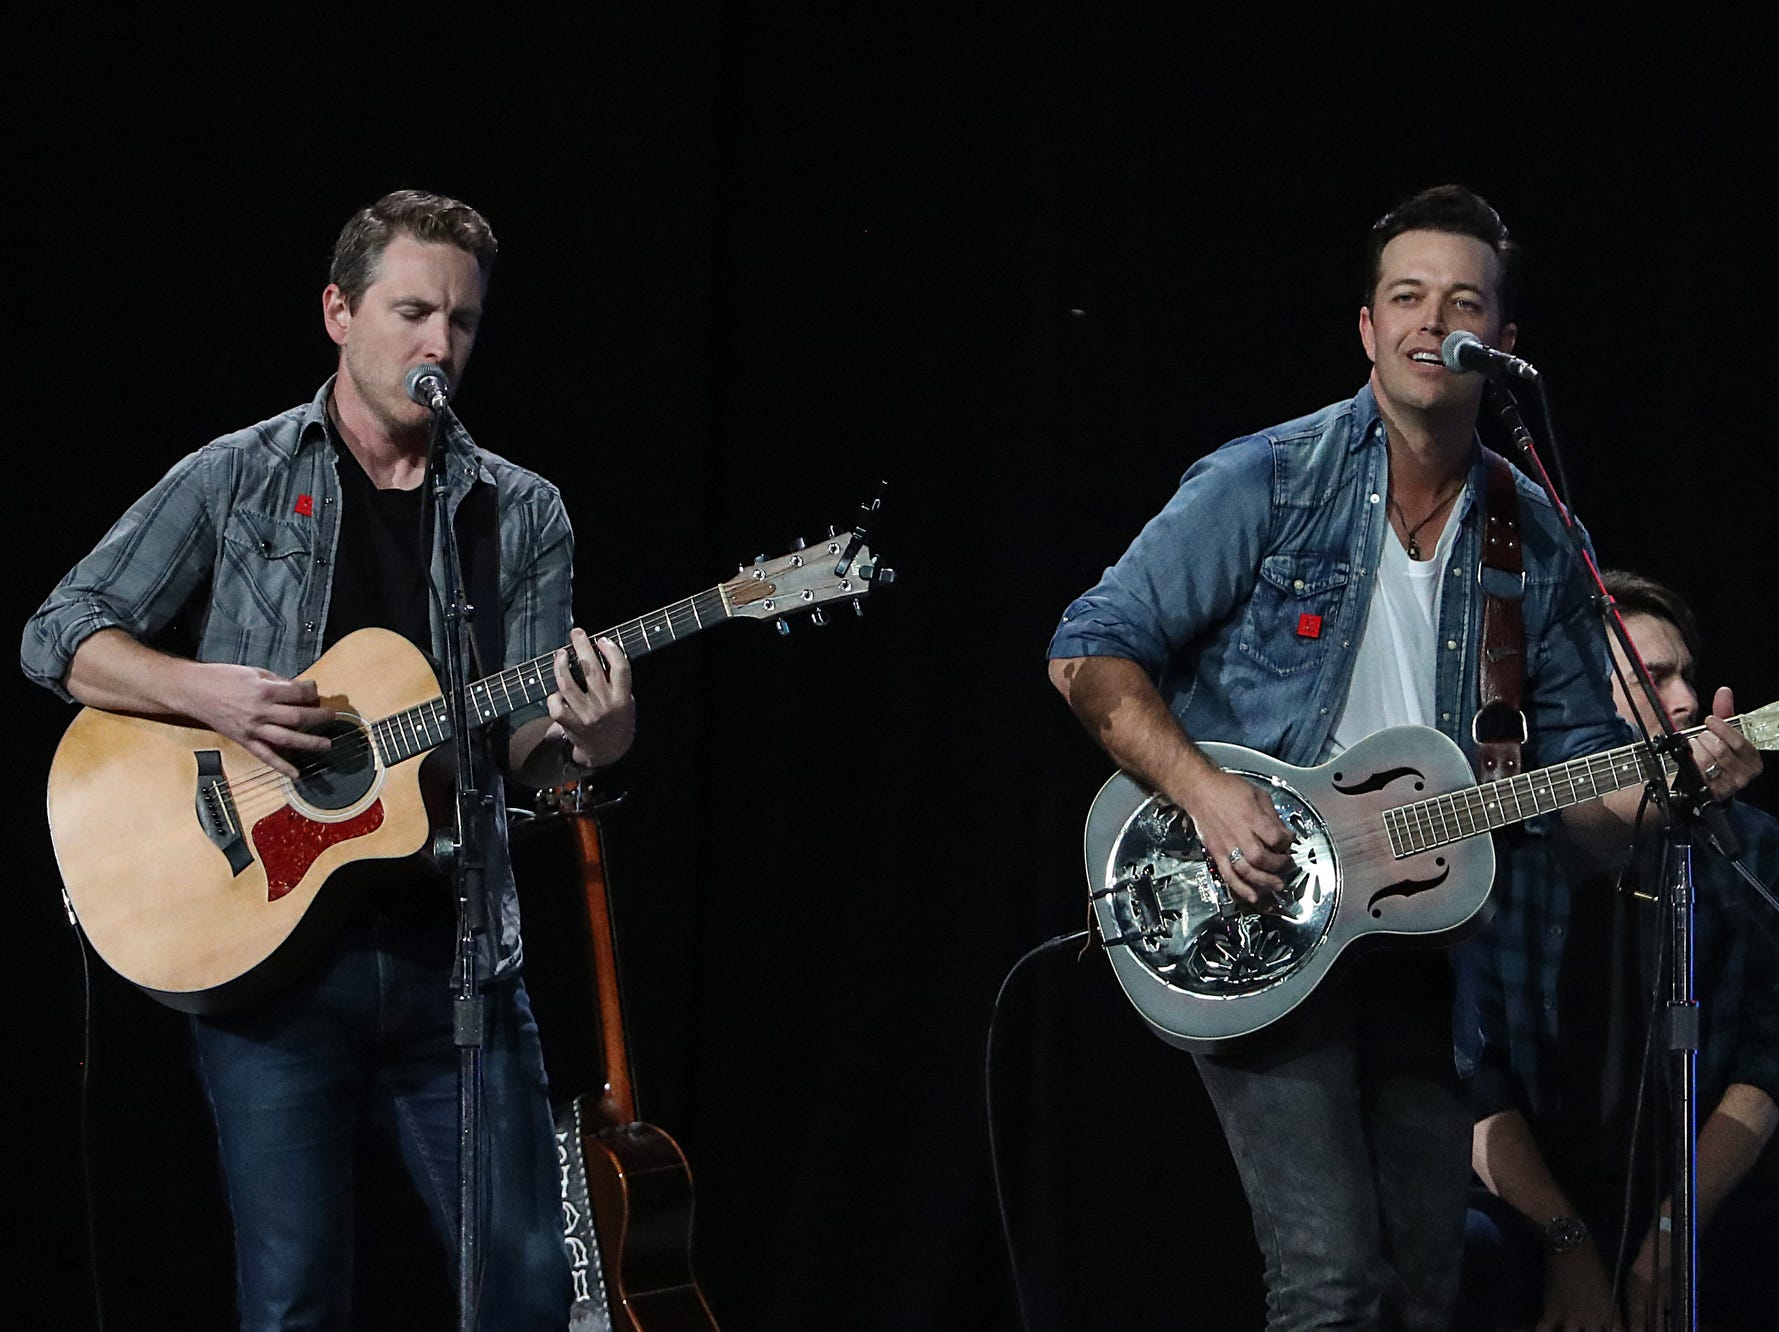 Lucas Hoge performs before the National Rifle Association Institute for Legislative Action Leadership Forum begins, Friday, April 26, 2019, at Lucas Oil Stadium in Indianapolis. The forum is part of the 148th NRA annual meetings and exhibits in Indianapolis.